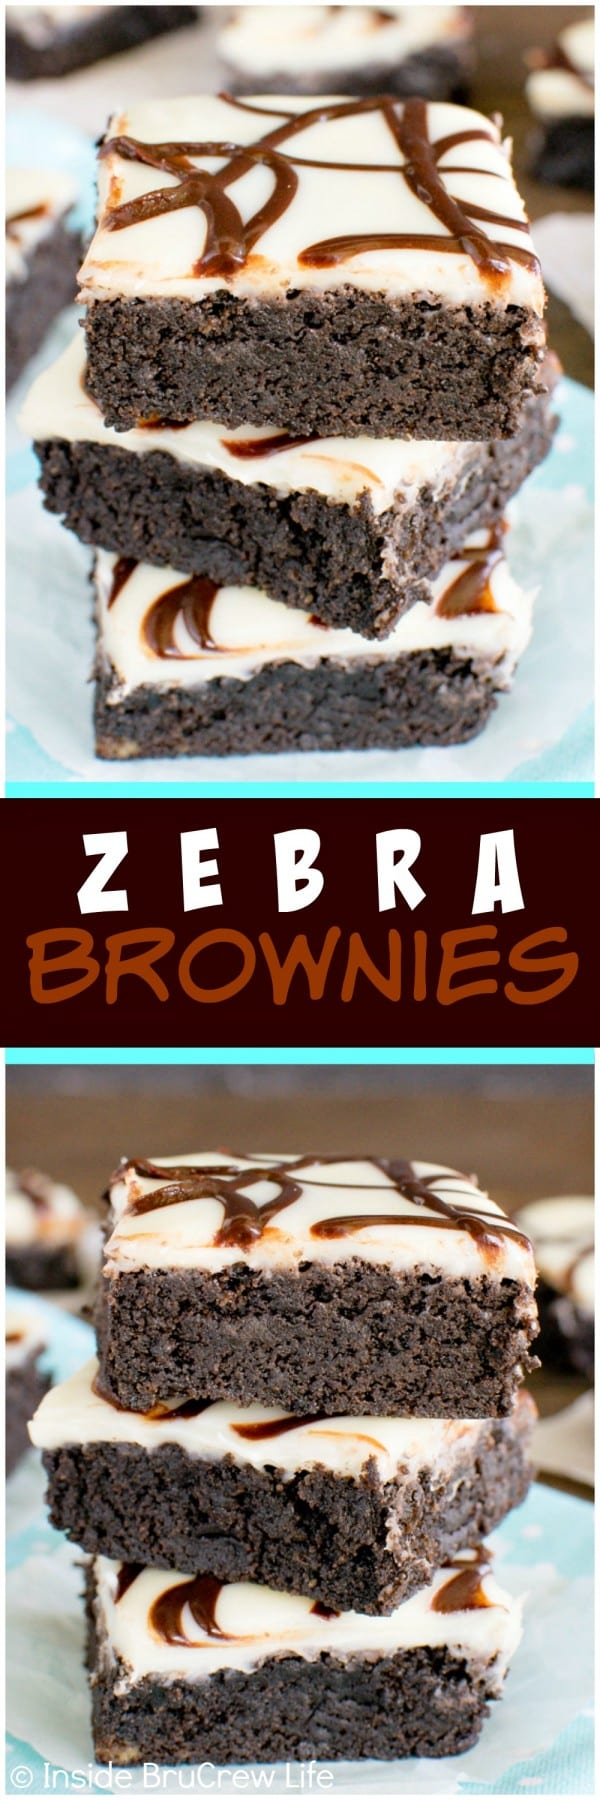 Zebra Brownies - white chocolate glaze and chocolate stripes make these fudgy homemade brownies disappear! Awesome dessert recipe!